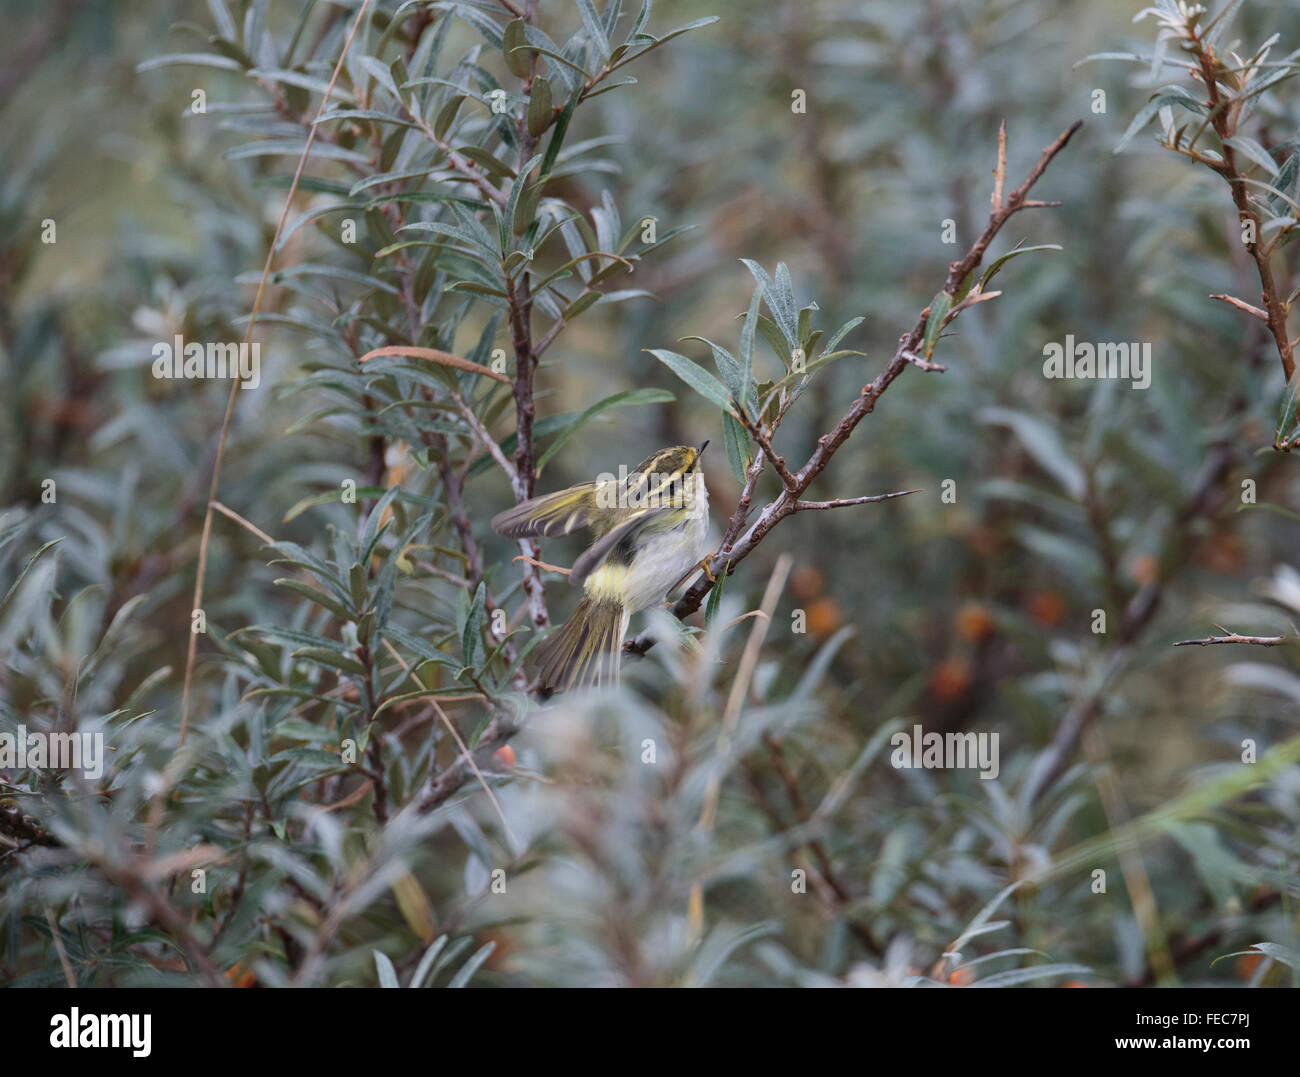 Pallas's Warbler, Phylloscopus, proregulus, Stock Photo